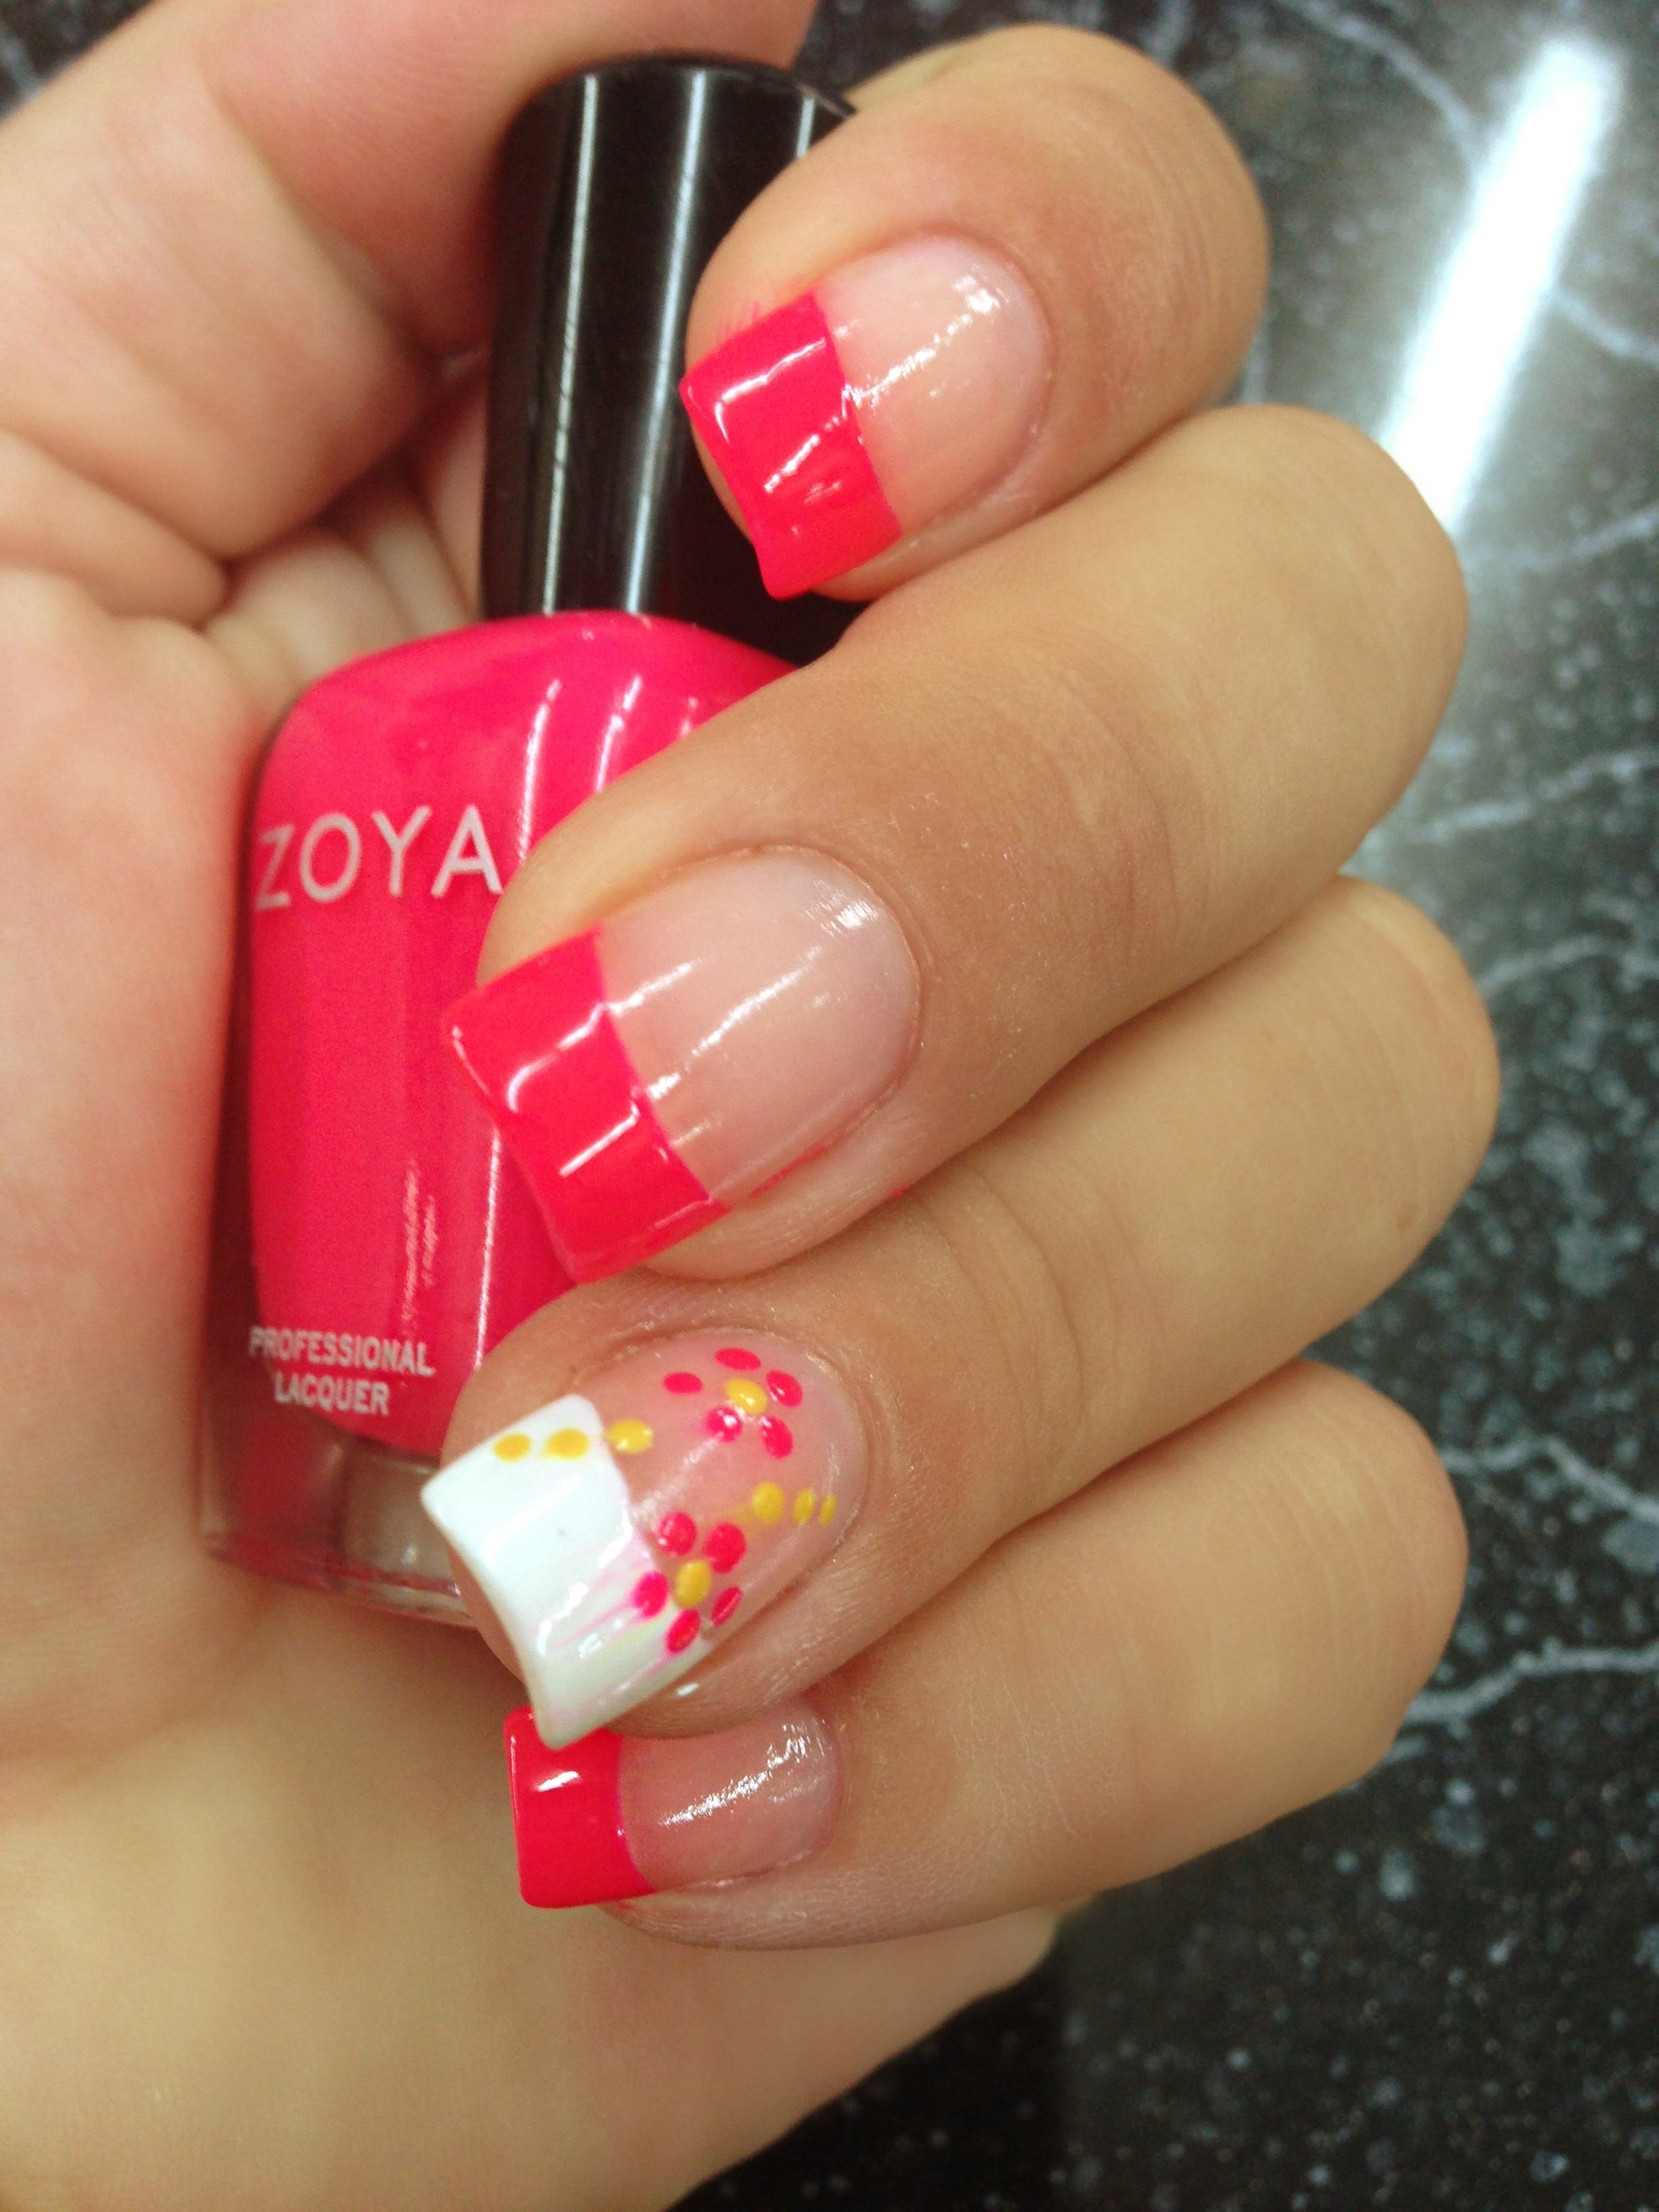 French Tip Nail Designs For Summer : french, designs, summer, Dieting, Digest, Featured, Nails,, Bright, Designs,, Designs